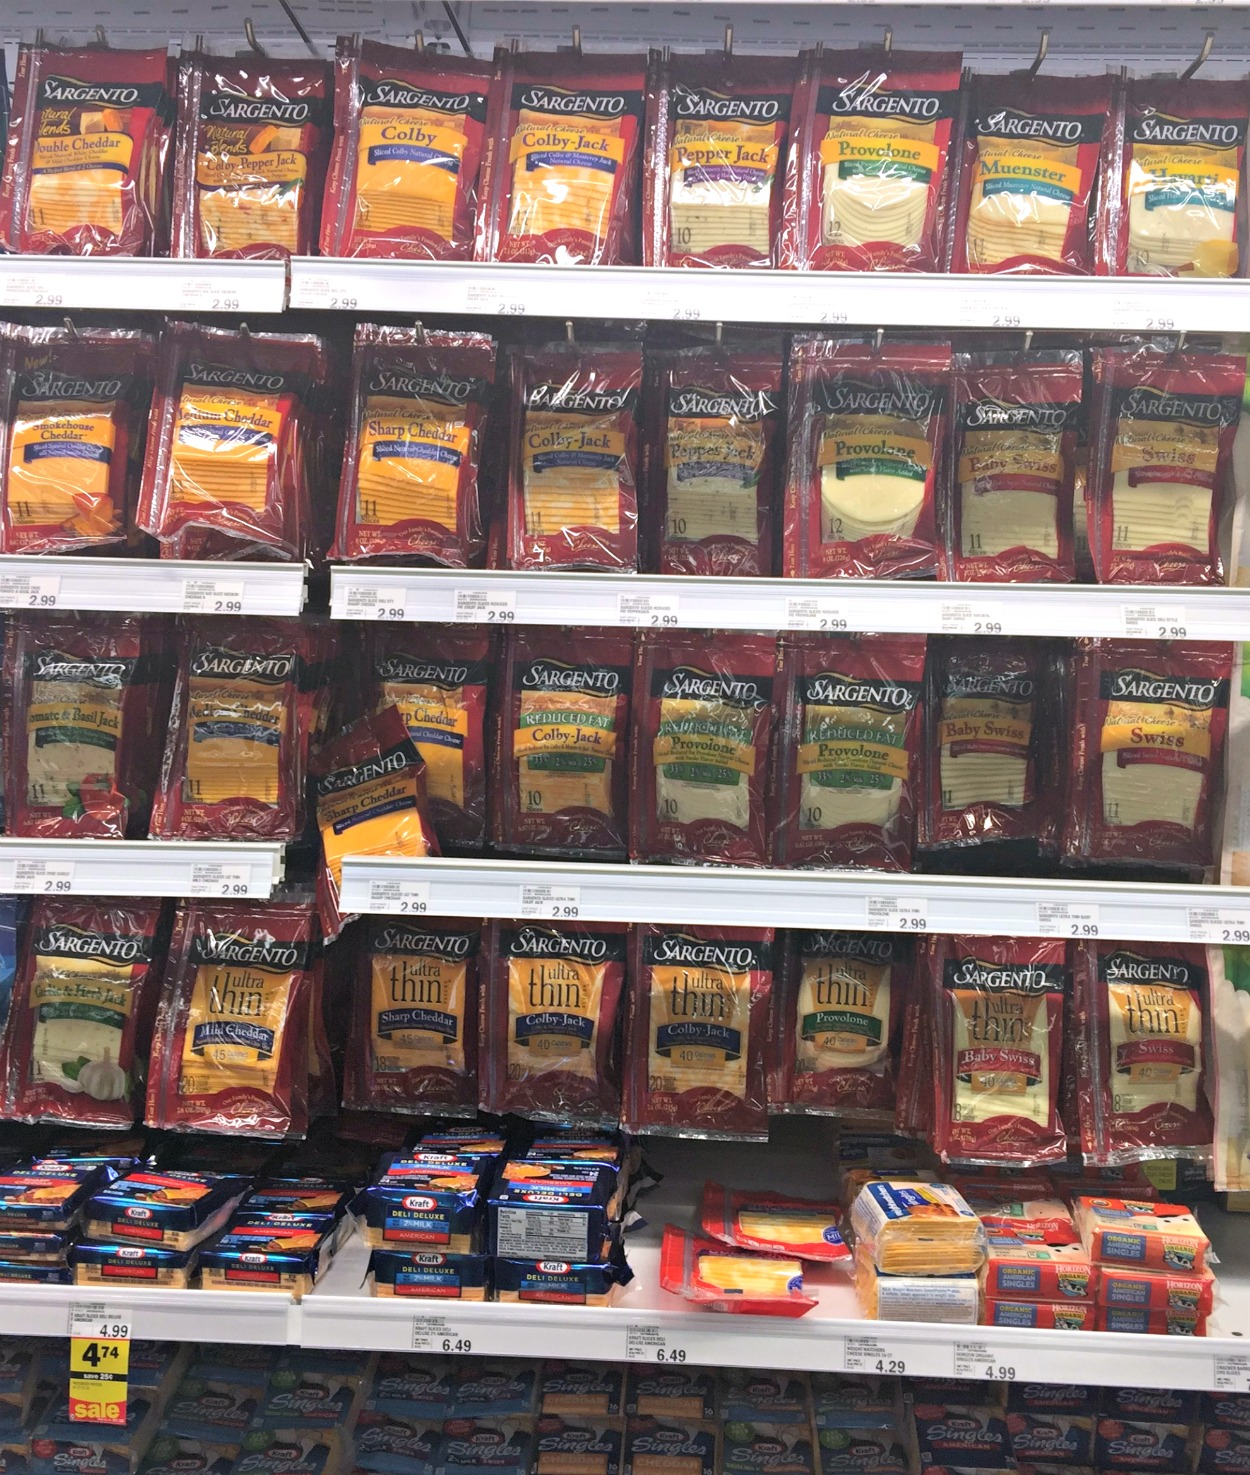 Sargento Natural Cheese at Meijer